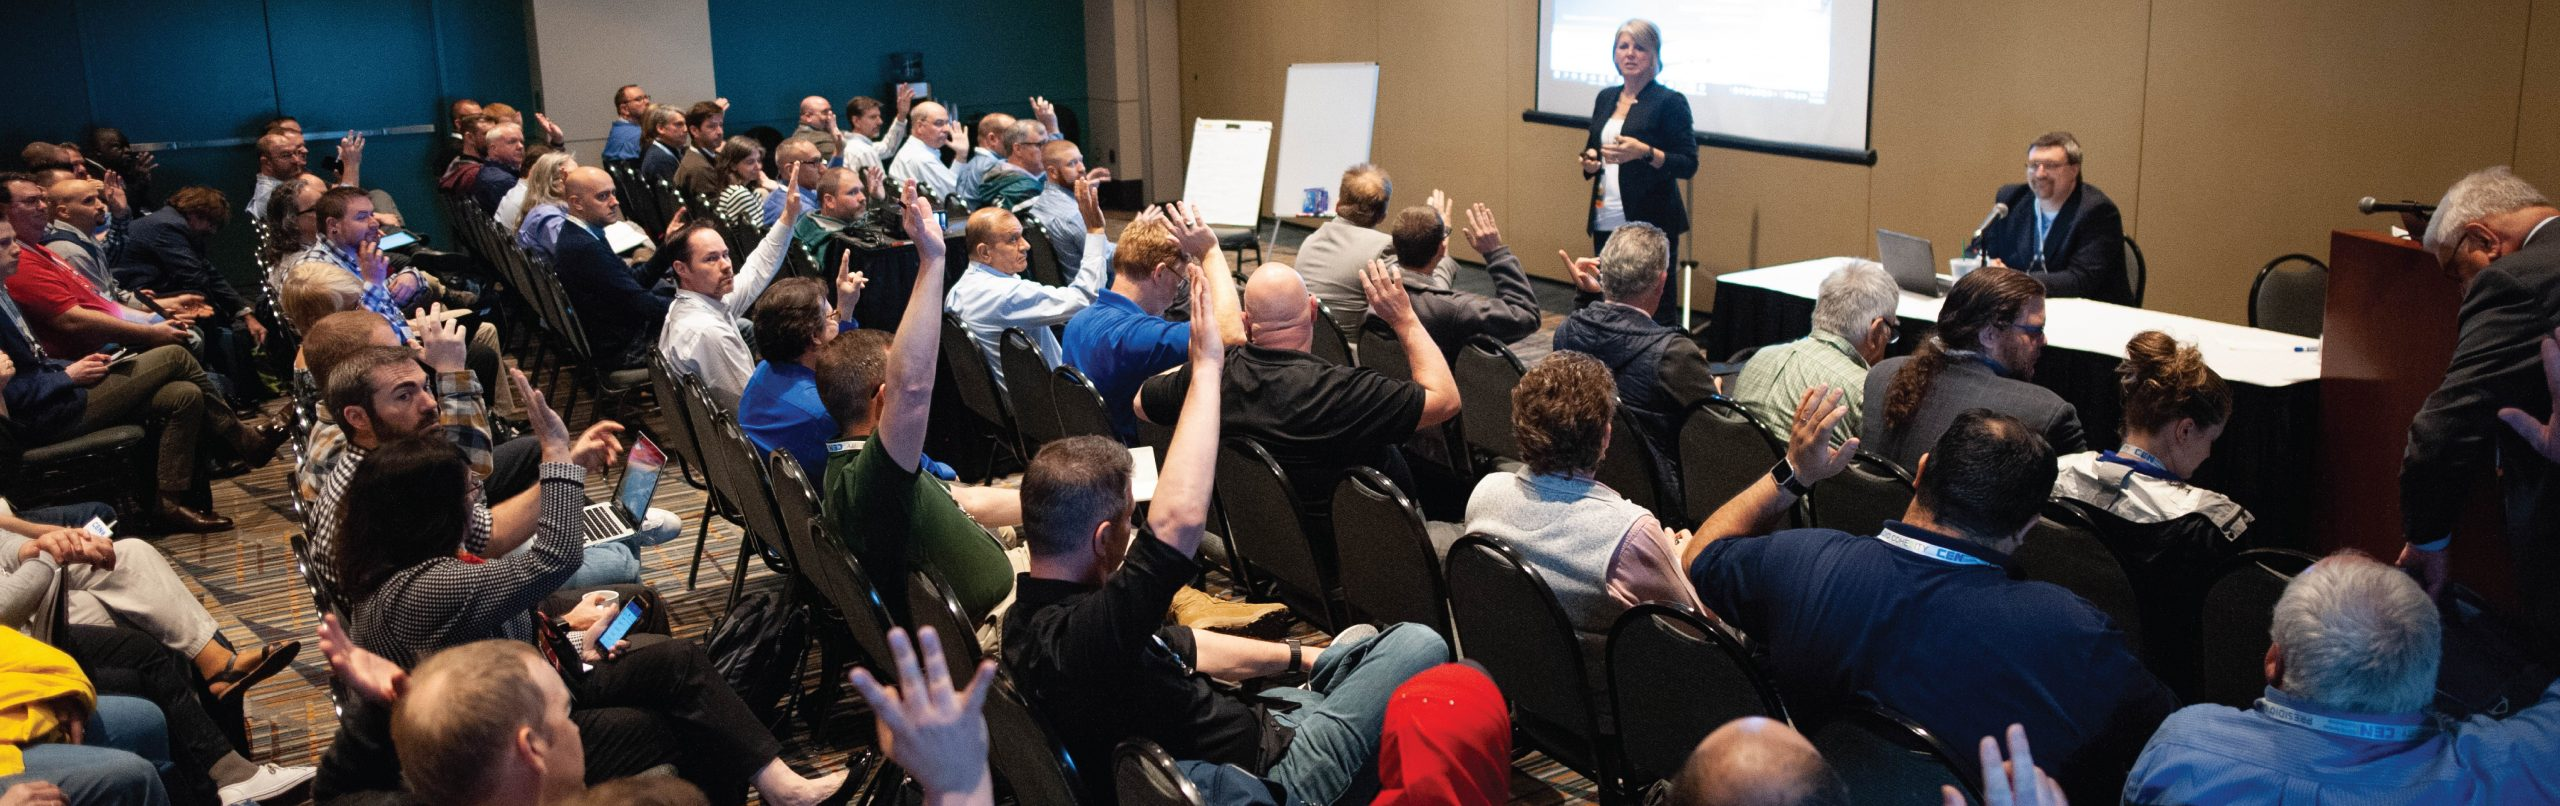 Image from the CEN Conference of a group of attendees sitting in chairs raising their hands and a woman speaking and giving a presentation